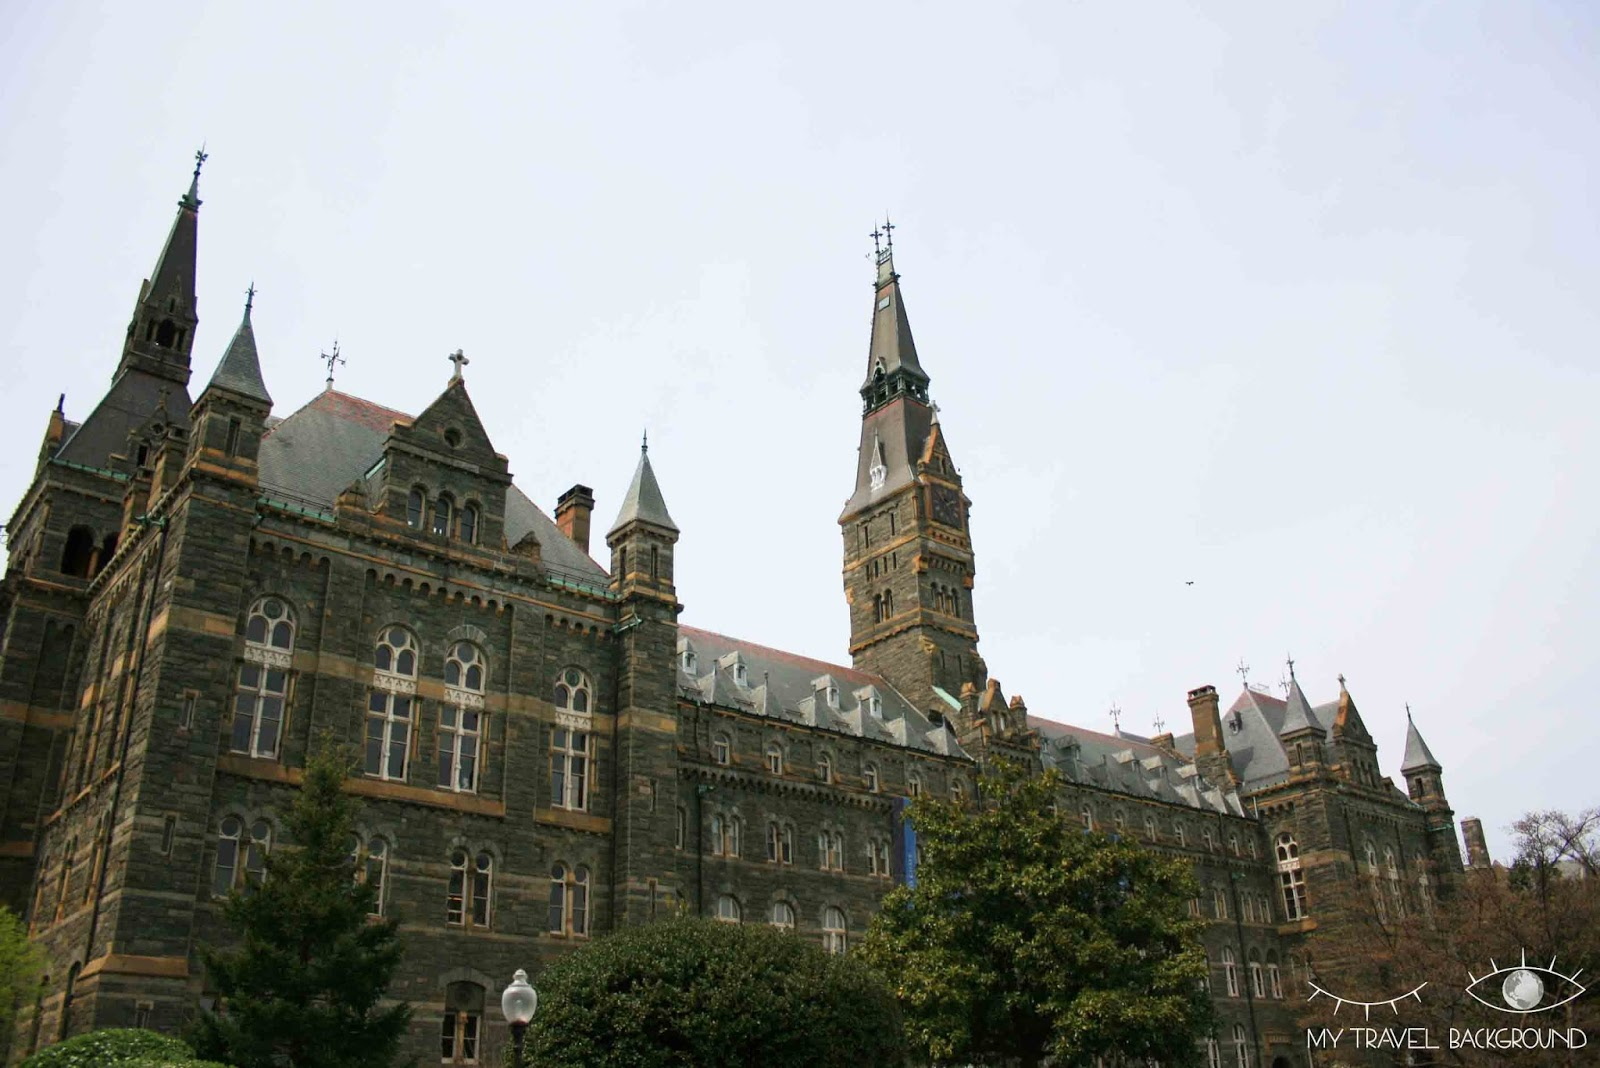 My Travel Background : Les principales universités américaines de la côte Nord-Est - Georgetown University